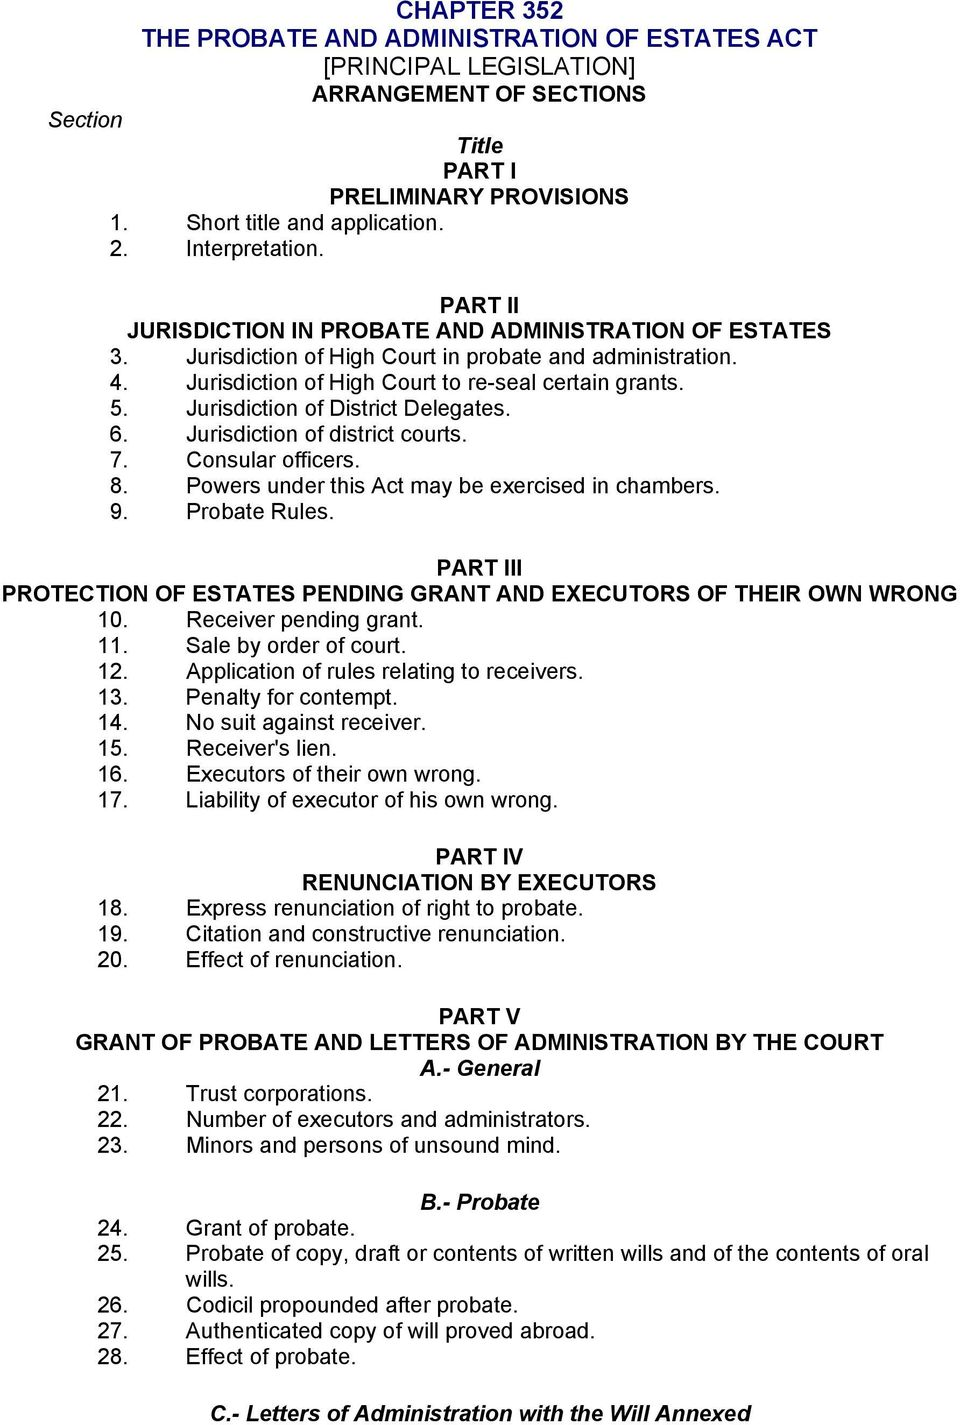 Chapter 352 the probate and administration of estates act jurisdiction of district delegates 6 jurisdiction of district courts 7 consular officers spiritdancerdesigns Choice Image